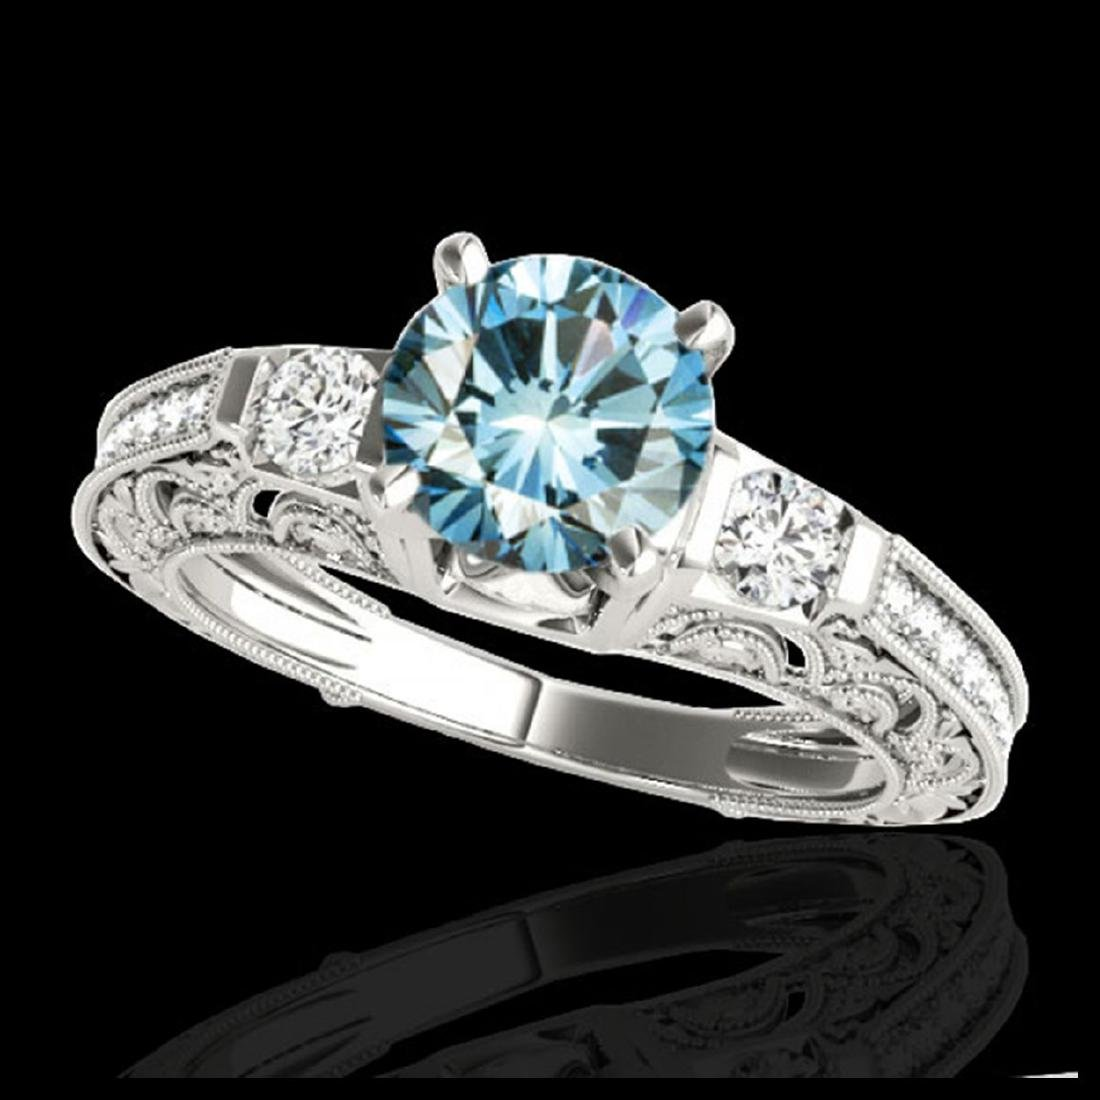 1.63 ctw SI Blue Diamond Solitaire Ring 10K White Gold